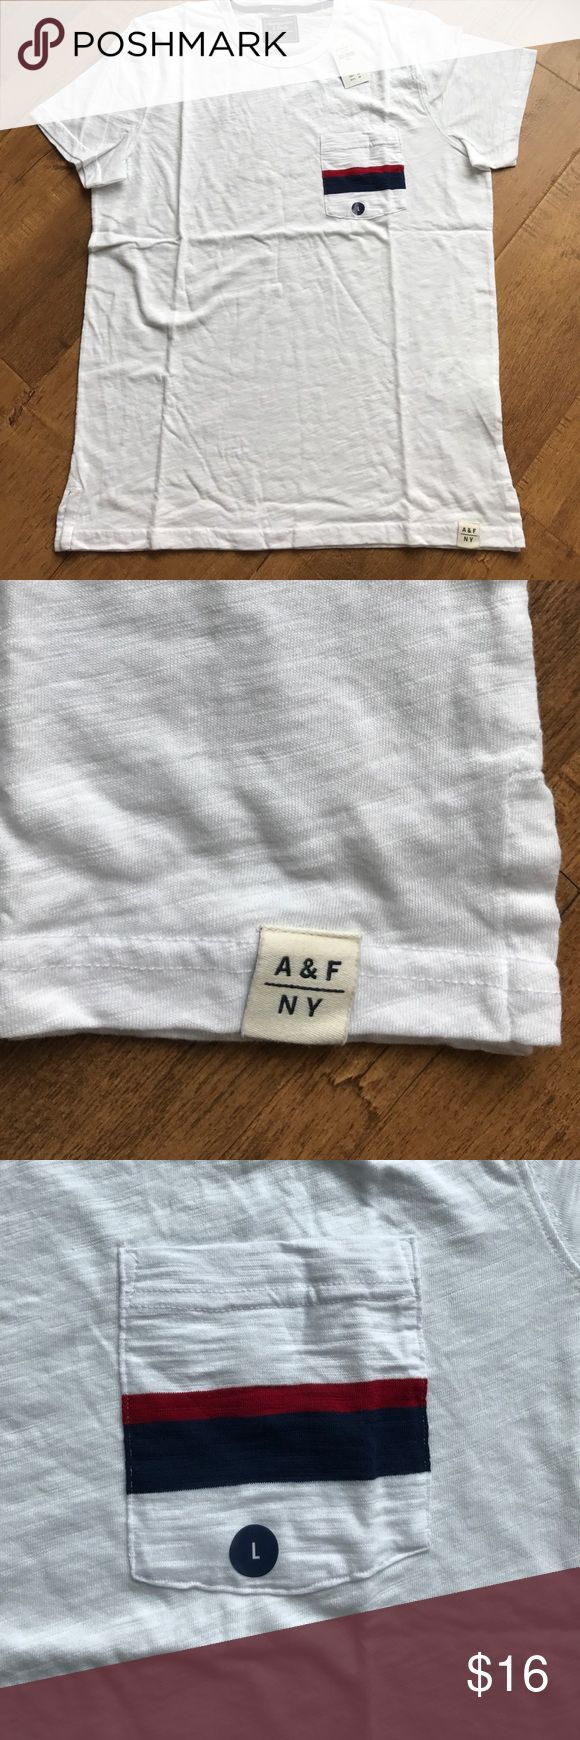 A&F men's nautical striped T-shirt Abercrombie and Fitch nautical pocketed men's tshirt Abercrombie & Fitch Shirts Tees - Short Sleeve